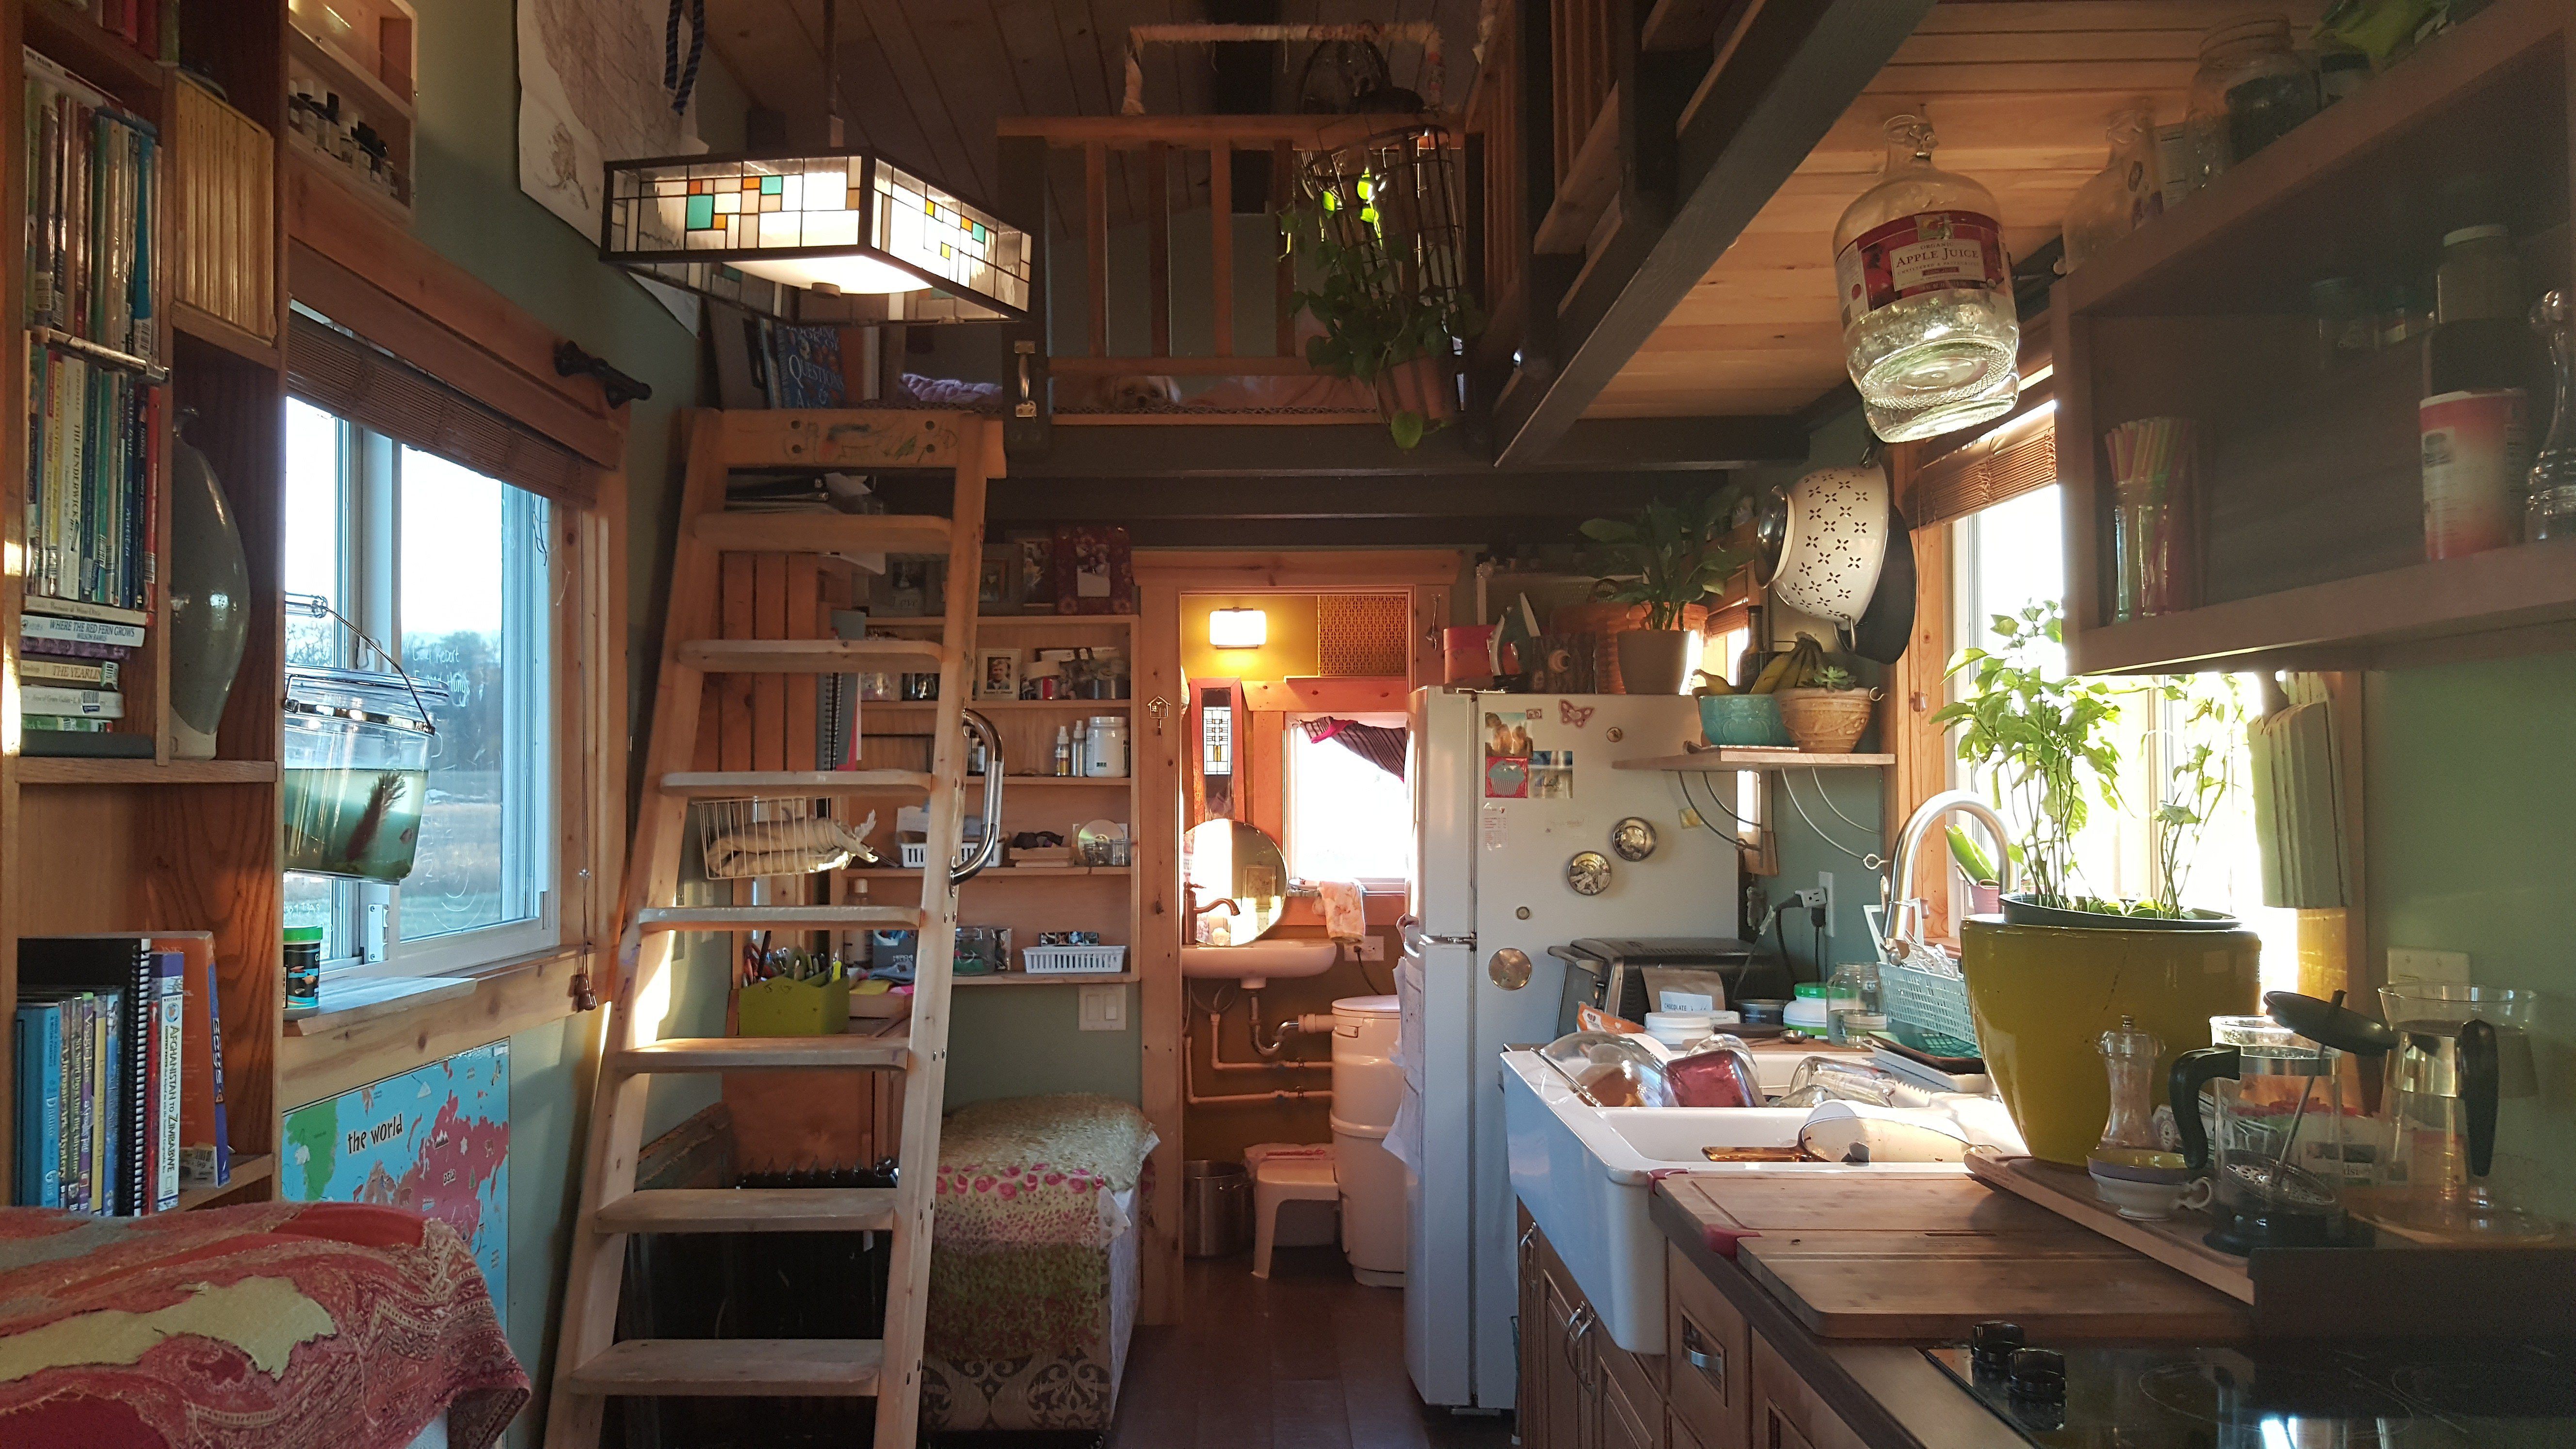 Tiny House Interieur The Truth Behind Tiny House Living From People Who 39ve